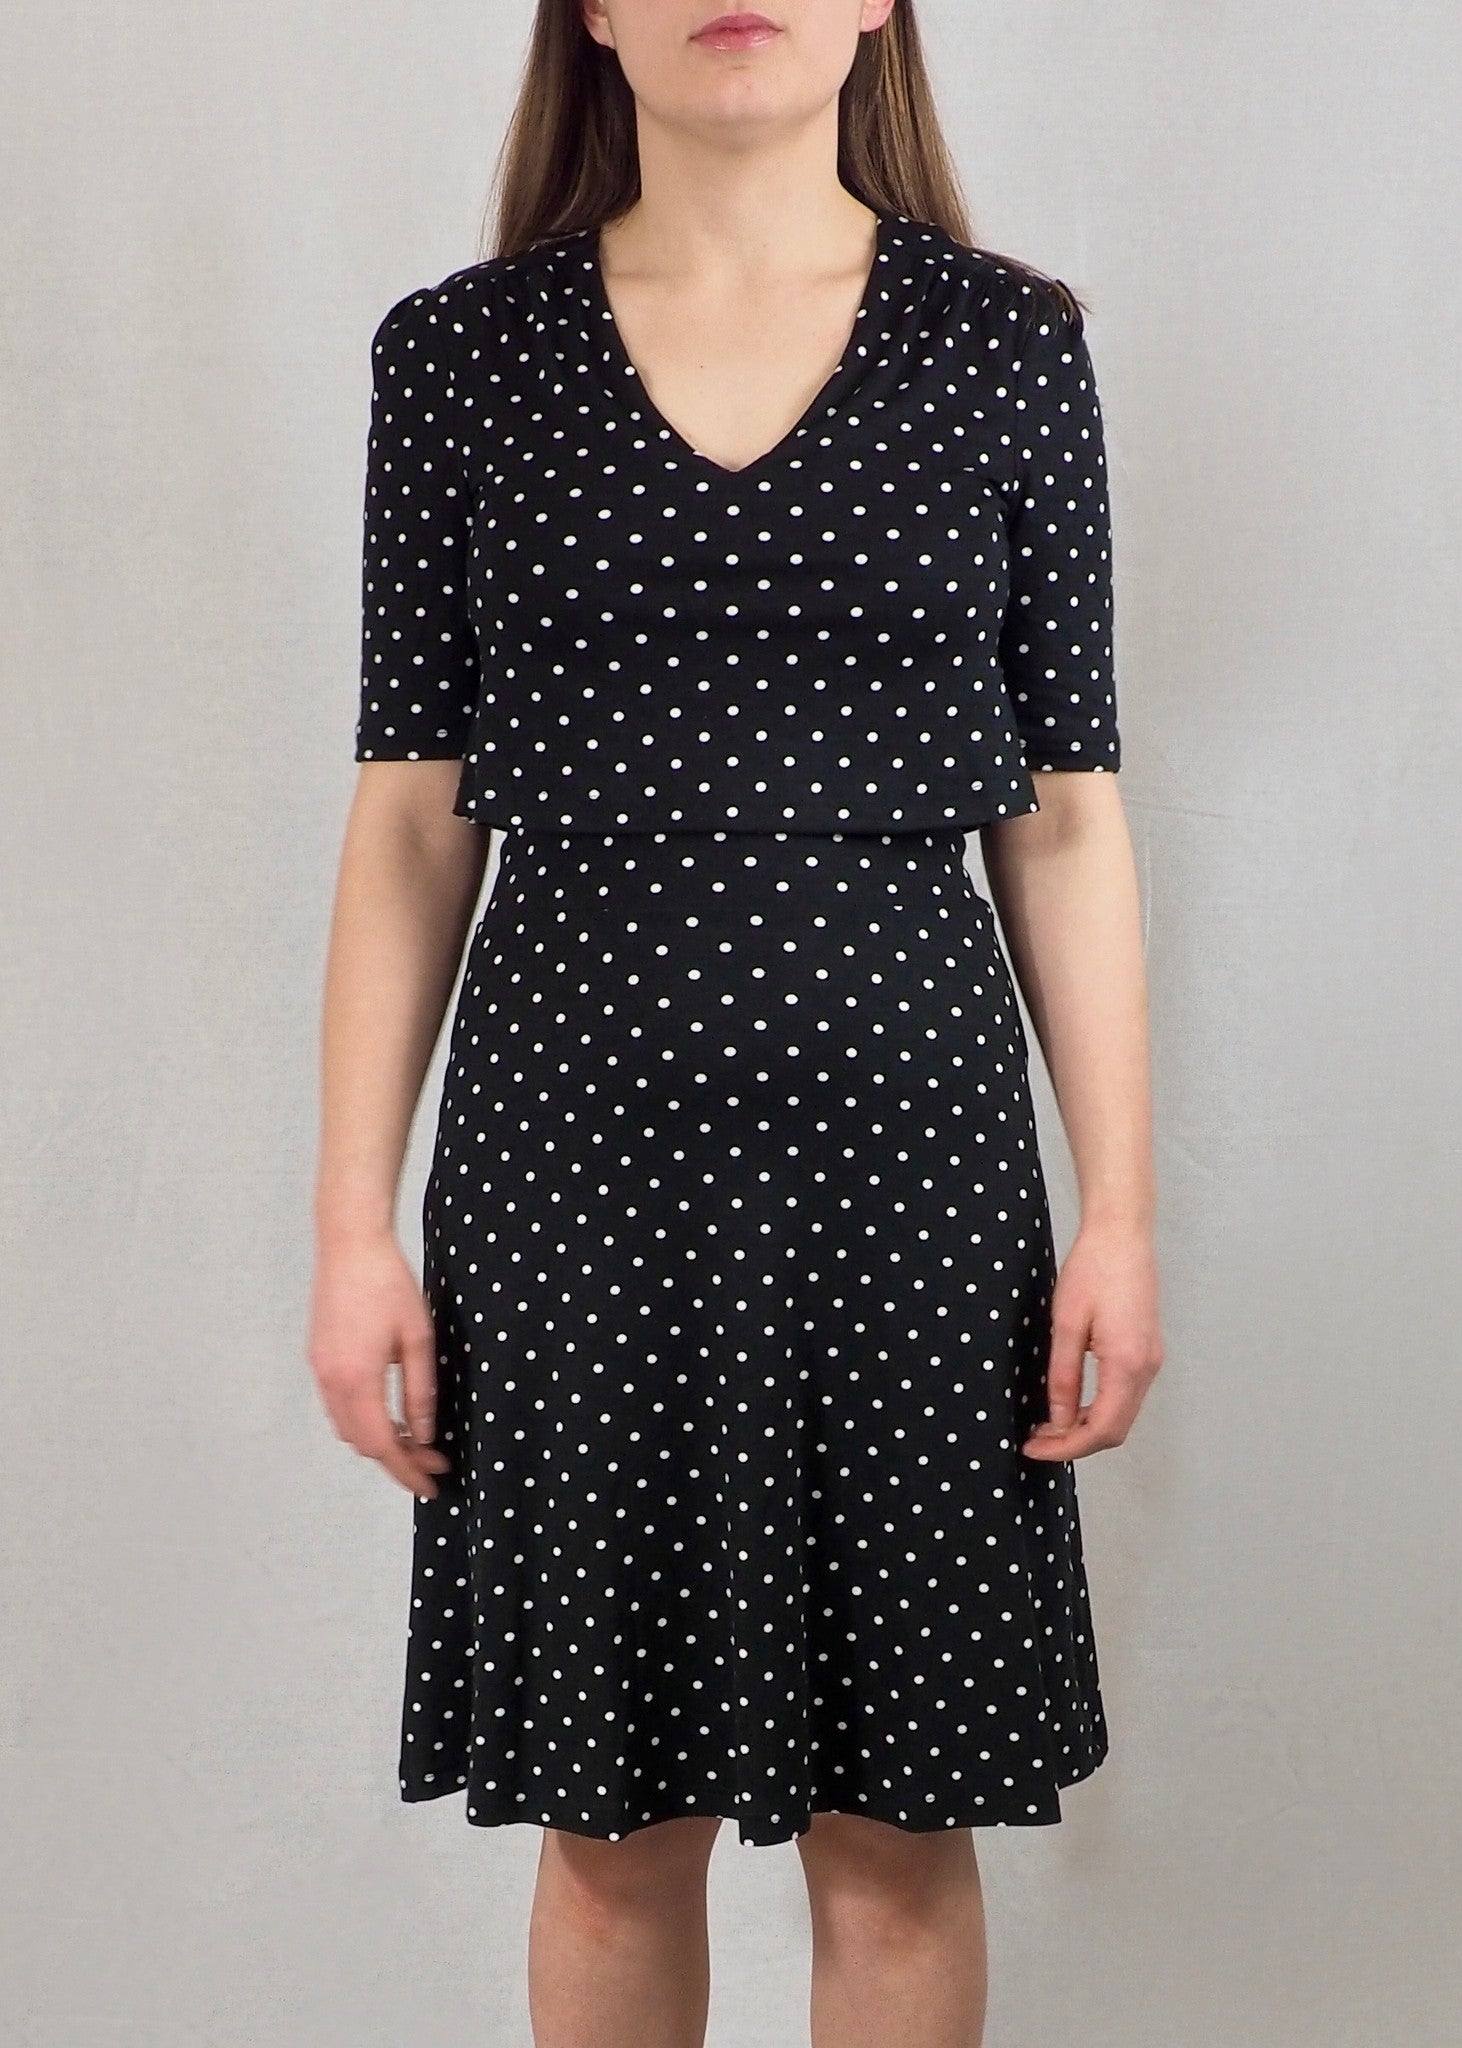 Black Polka Dot Nursing Tea Dress